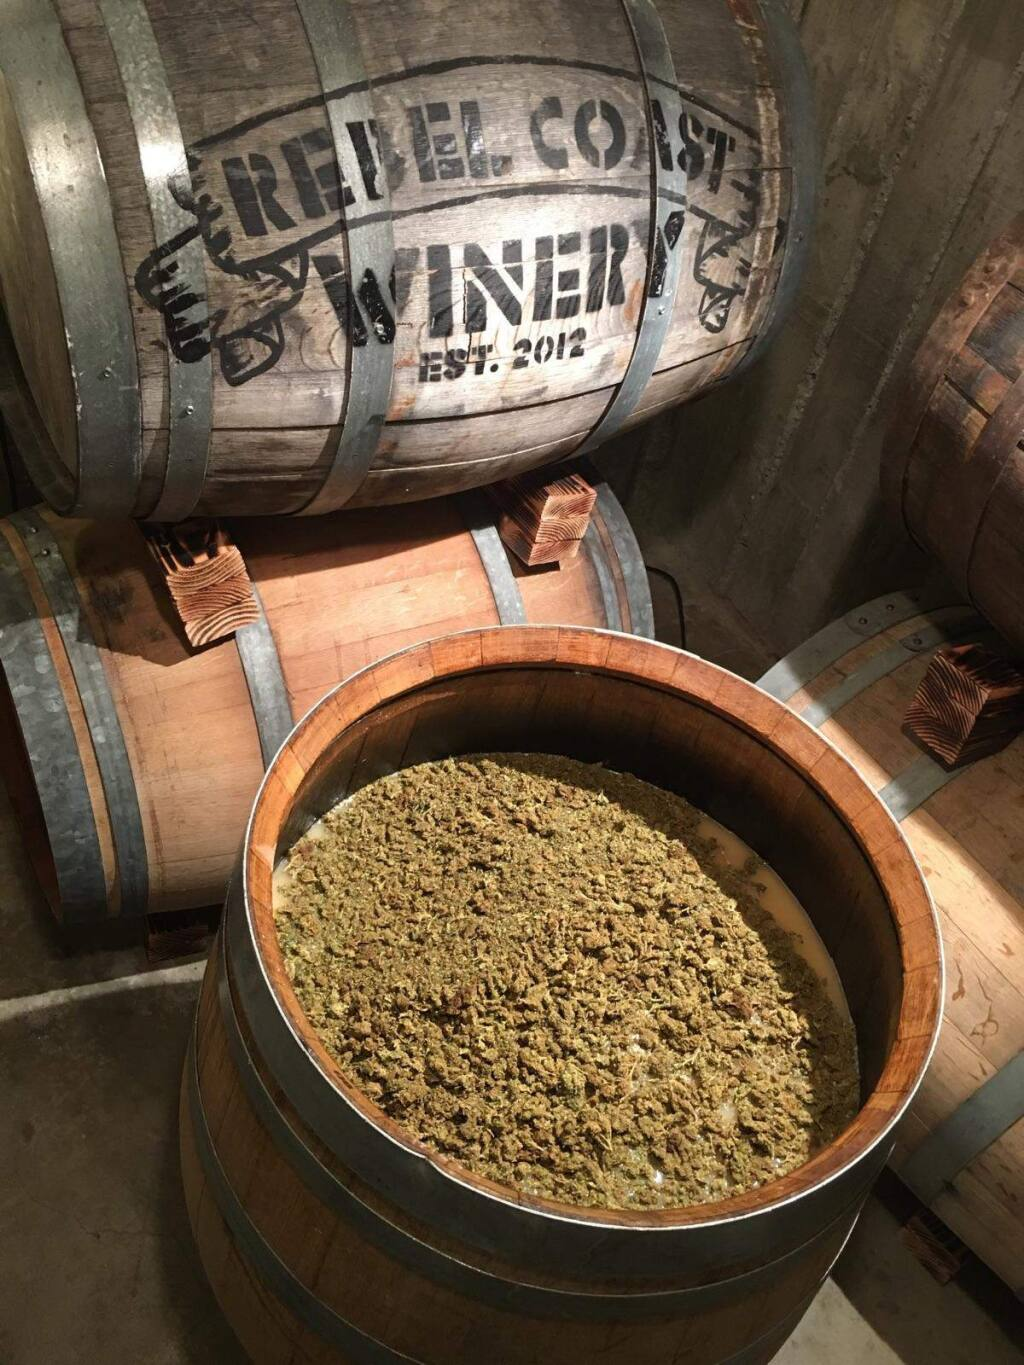 Rebel Coast Wine infuses a Sonoma Valley sauvignon blanc with oganic sativa flowers to create a 'green wine' which they hope to market widely in the state next year. (Chip Forsythe)